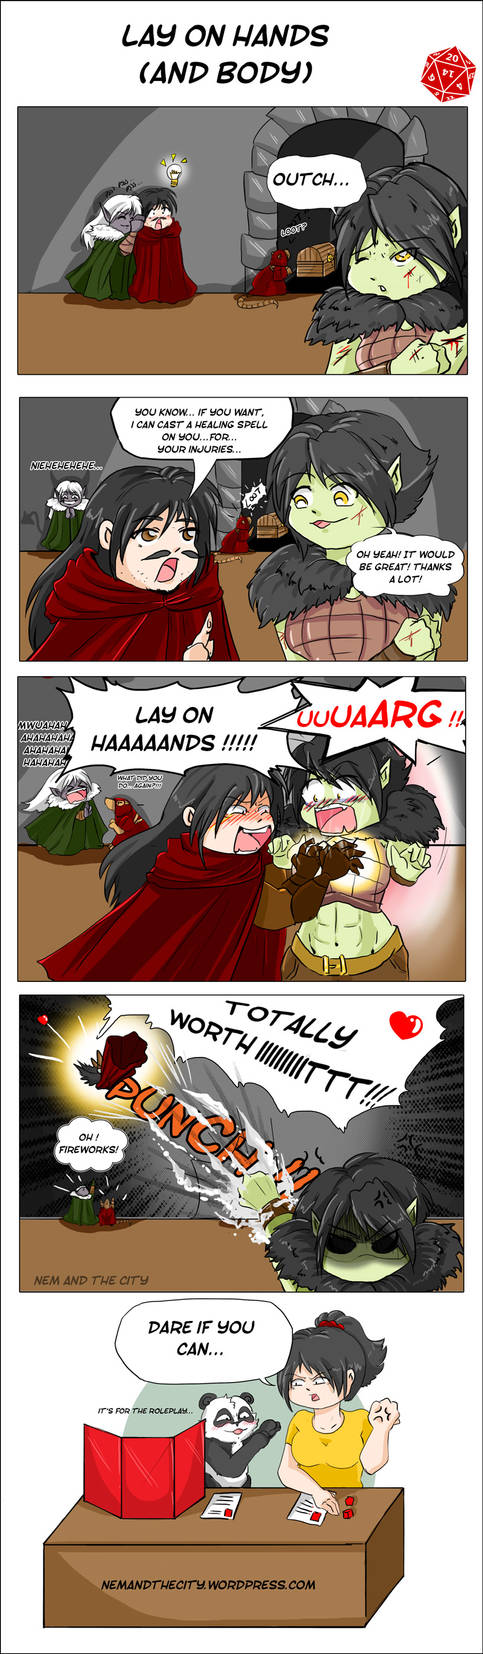 RPG comic strip - Lay on hands by Khaneety